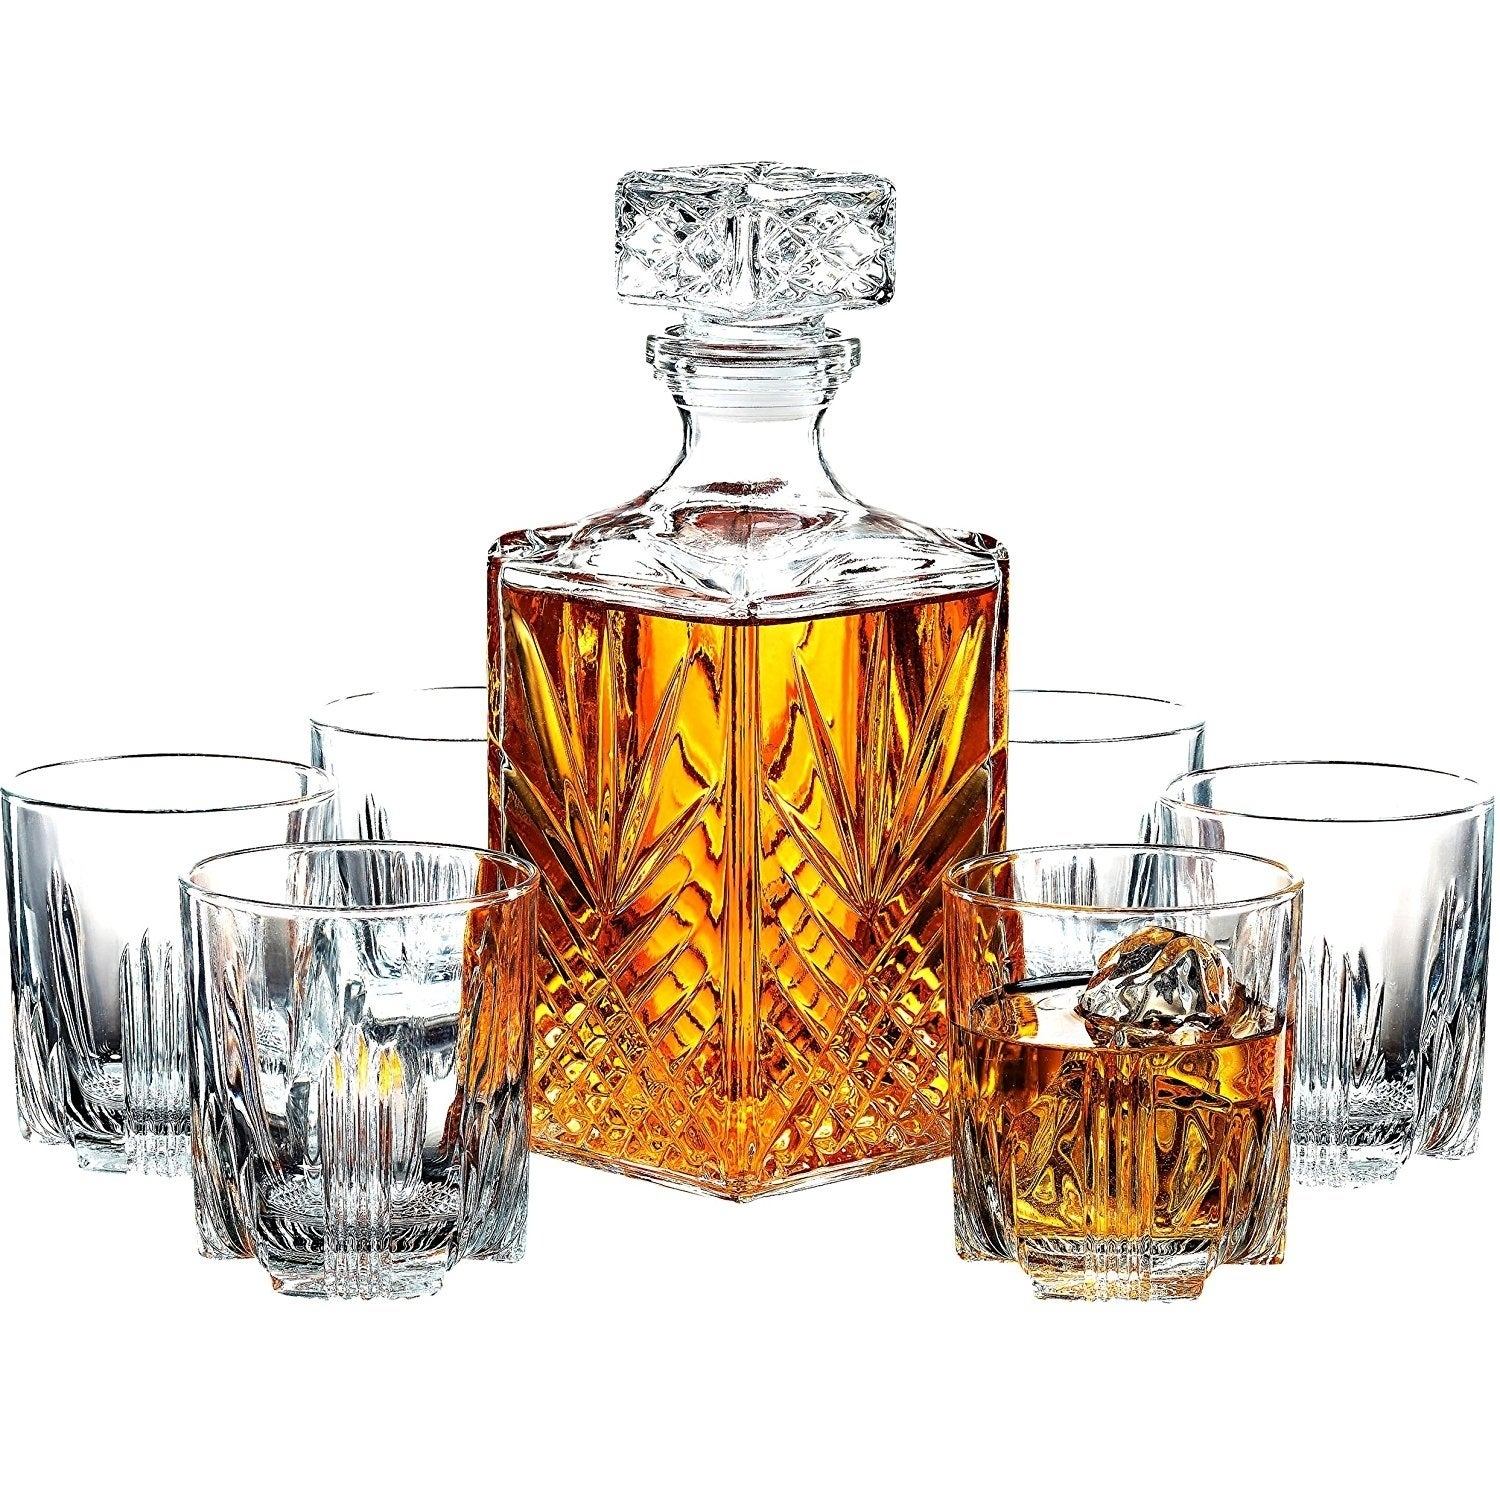 7 Piece Italian Crafted Gl Decanter Whisky Gles Set Elegant With Ornate Stopper And 6 Exquisite Free Shipping On Orders